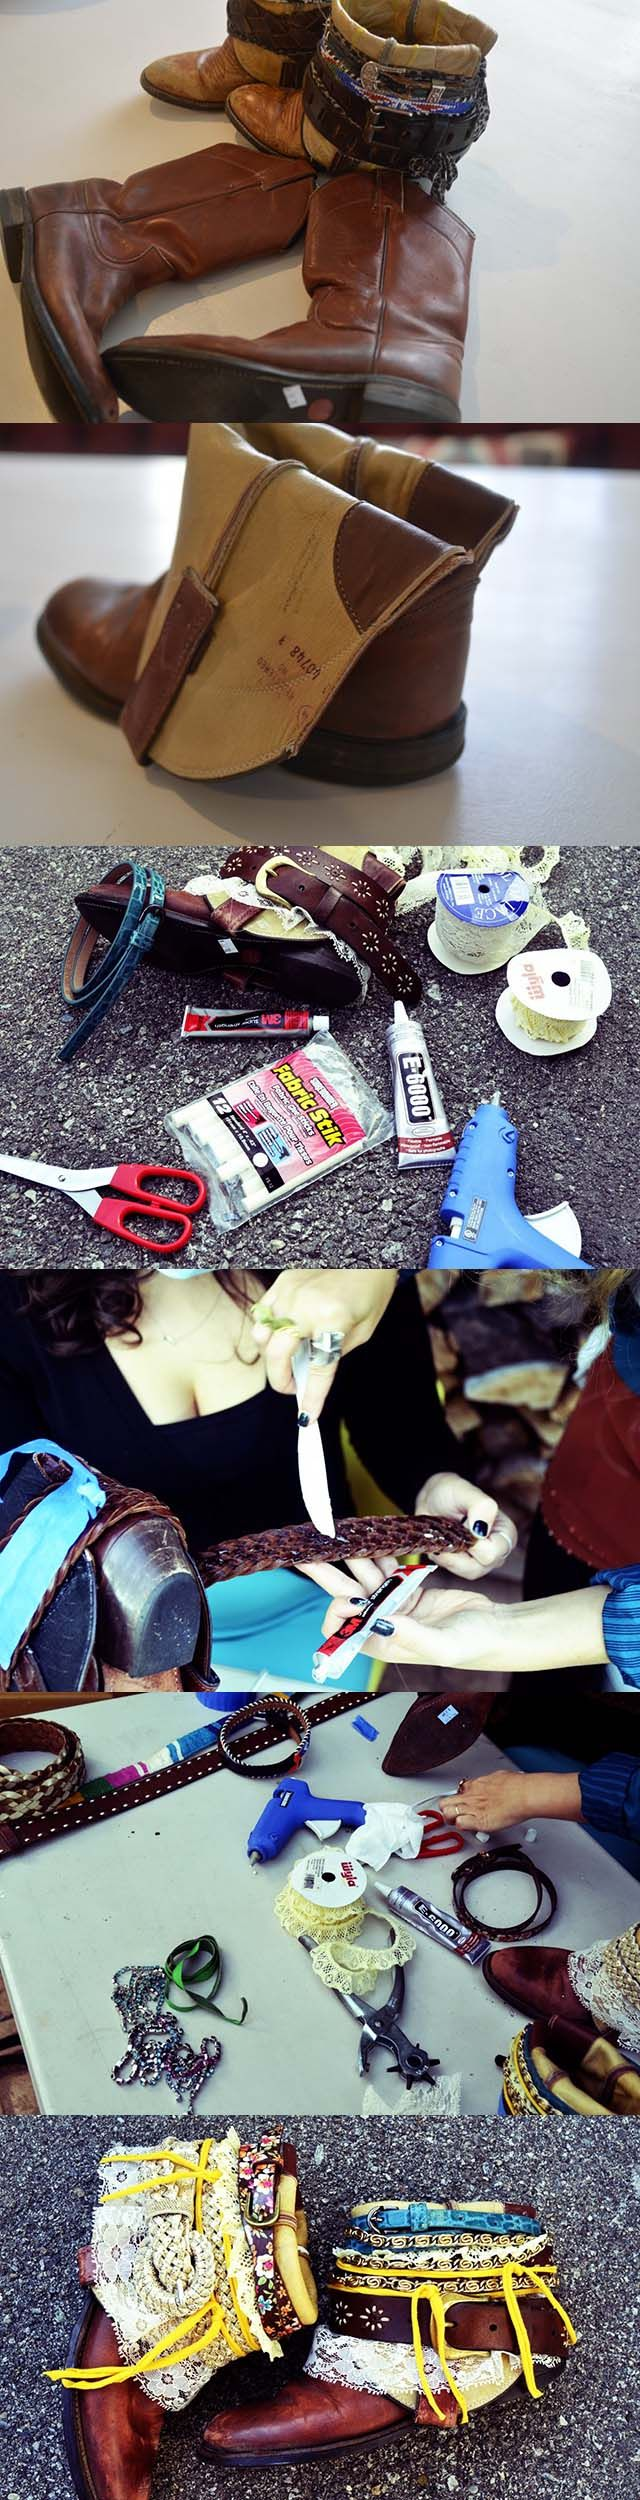 DIY Bohemian Boots|Add A Little Flair To Old Boots | Pinkous